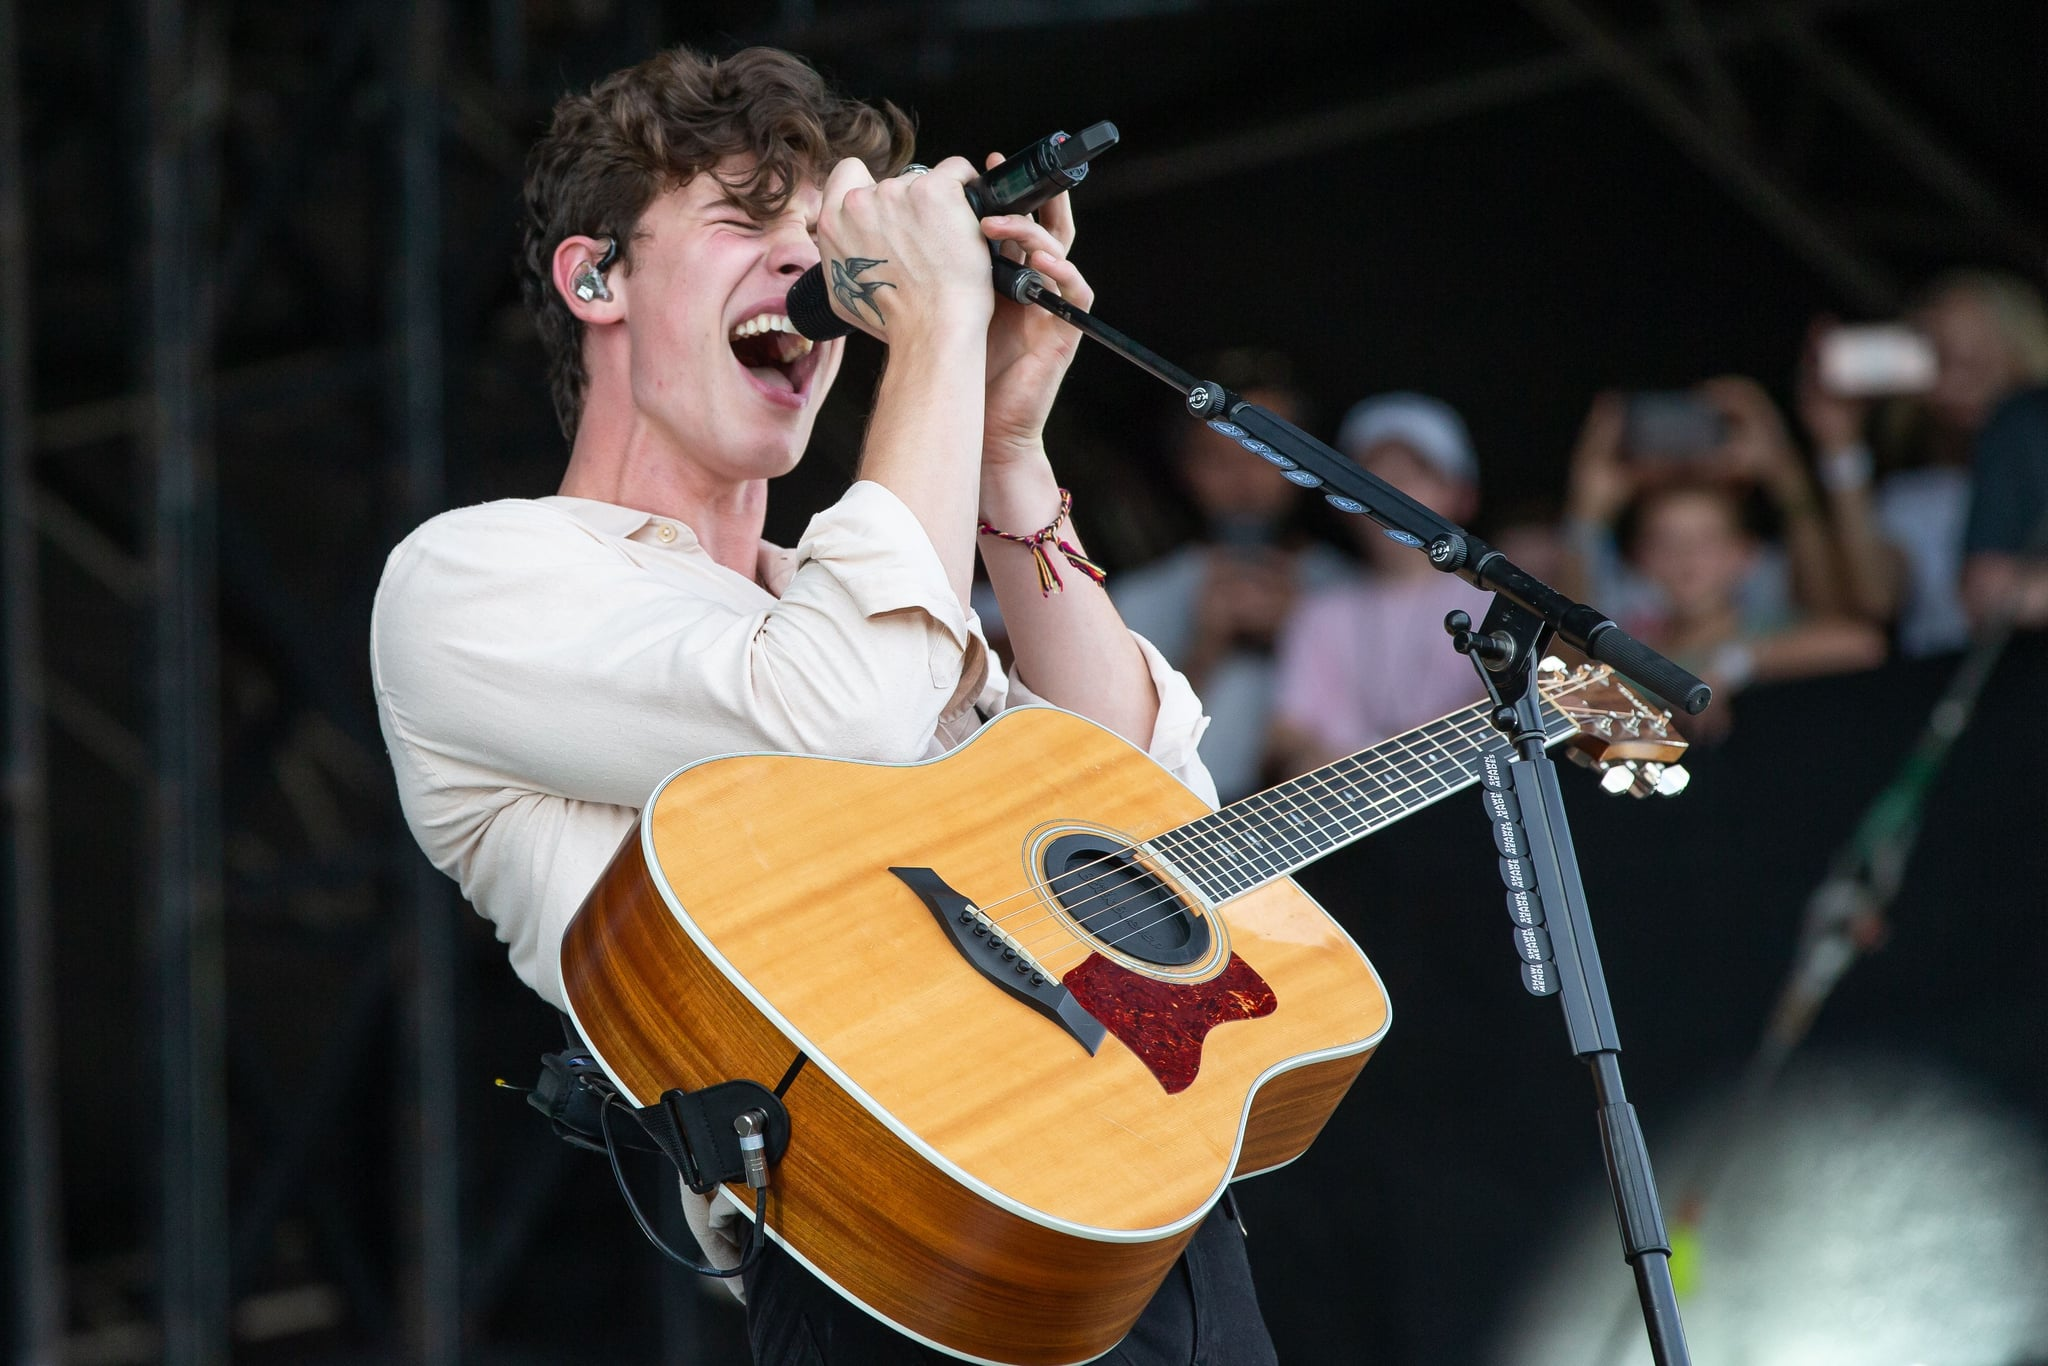 Canadian singer and songwriter Shawn Mendes performs during the 2018 Austin City Limits Music Festival at Zilker Park on October 14, 2018 in Austin, Texas. (Photo by SUZANNE CORDEIRO / AFP)        (Photo credit should read SUZANNE CORDEIRO/AFP/Getty Images)